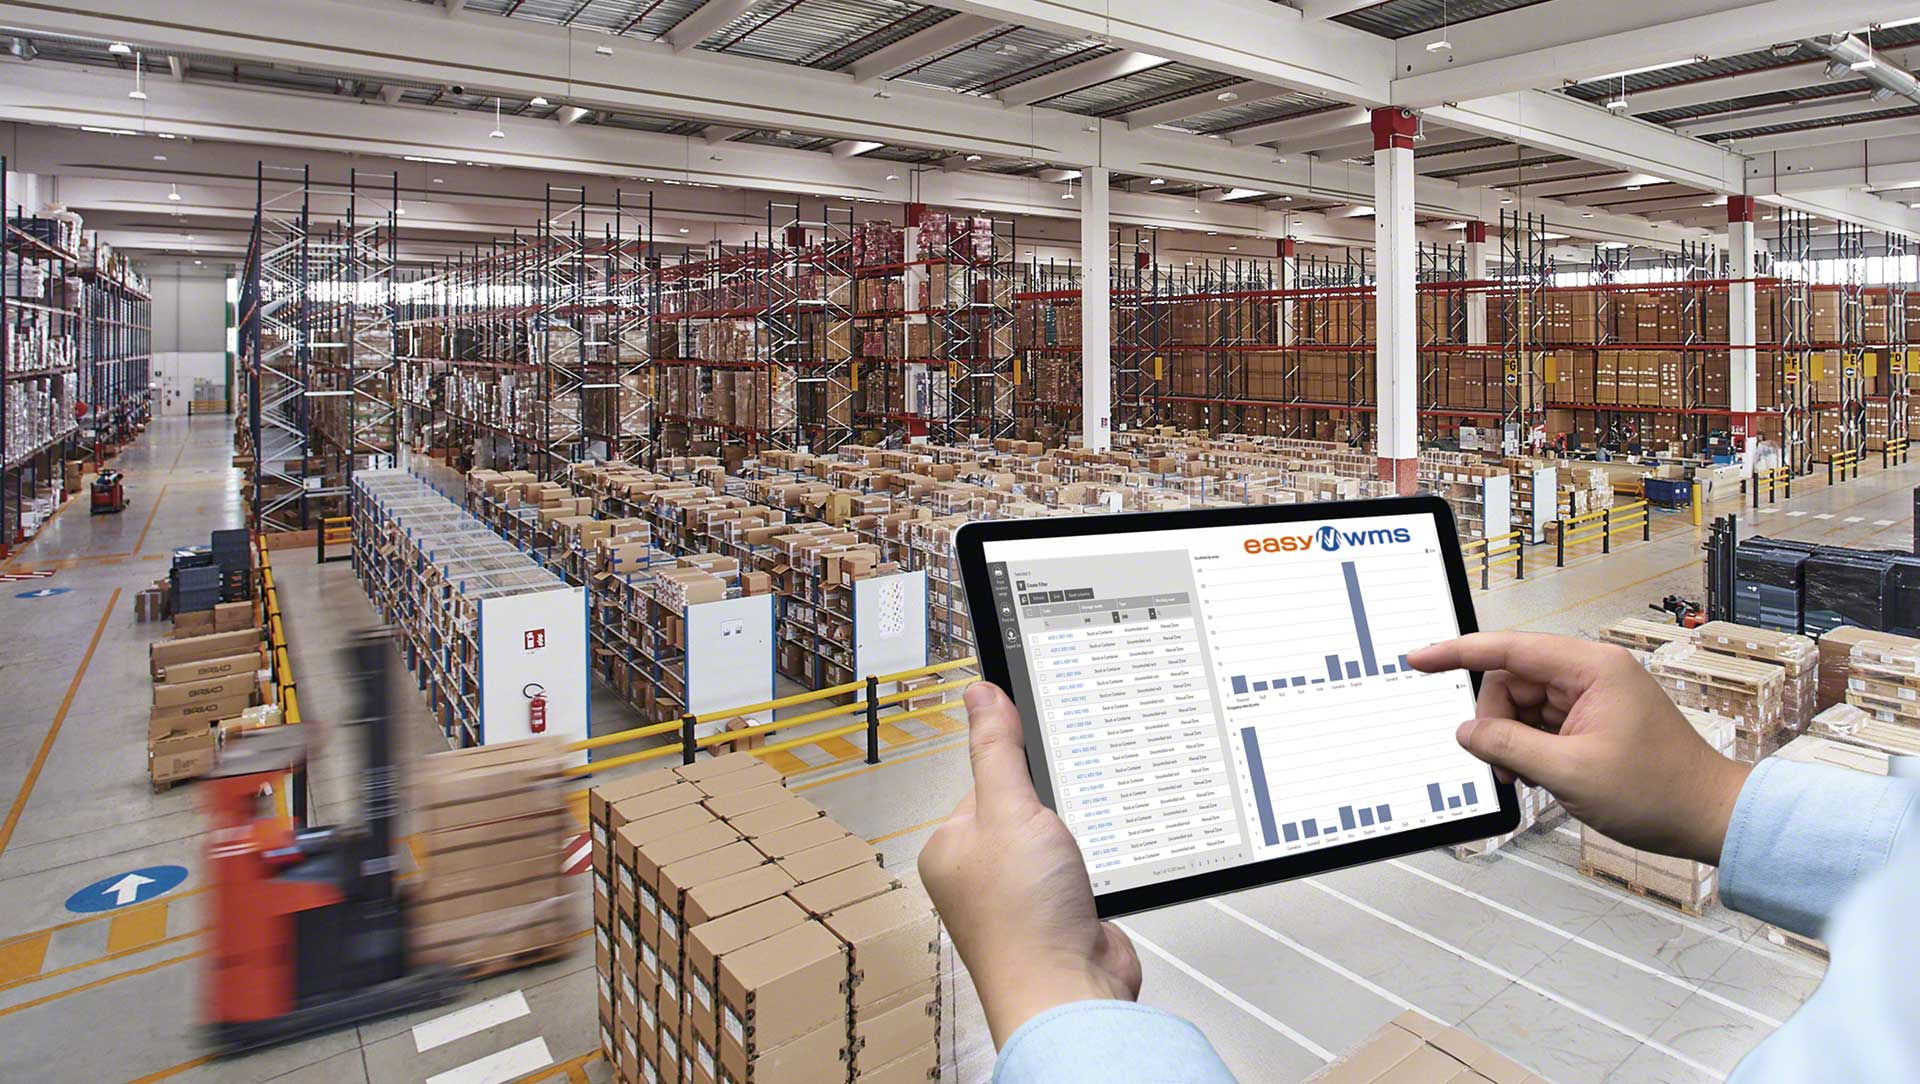 A supply chain diagnostic is a way to detect areas for improvement in the warehouse